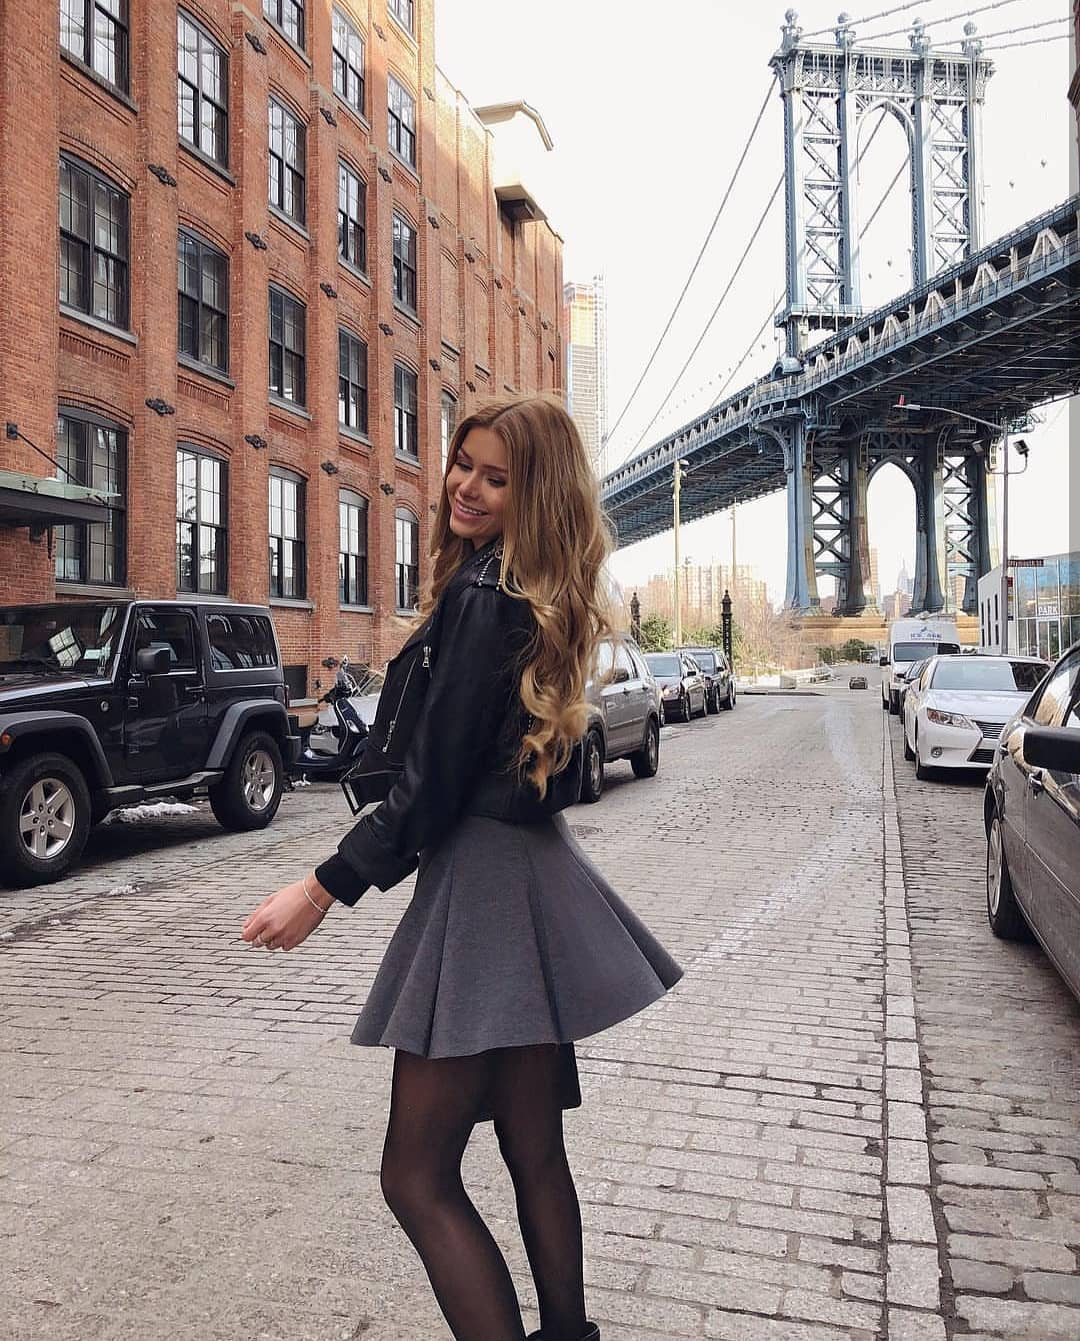 How To Wear Grey Flared Skirt With Black Leather Jacket This Spring 2019